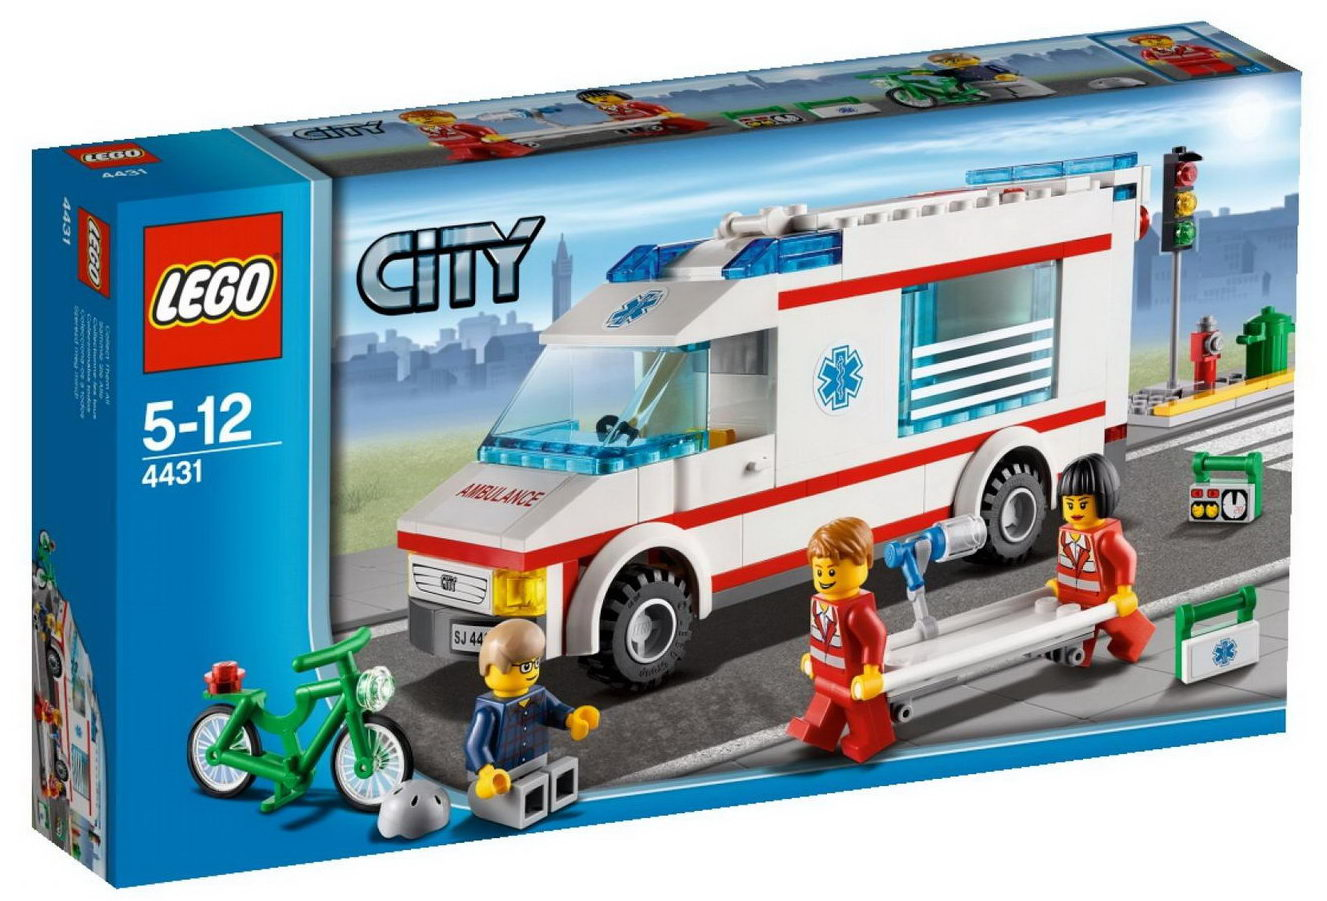 Repubblick set database lego 4431 ambulance - Lego ambulance ...